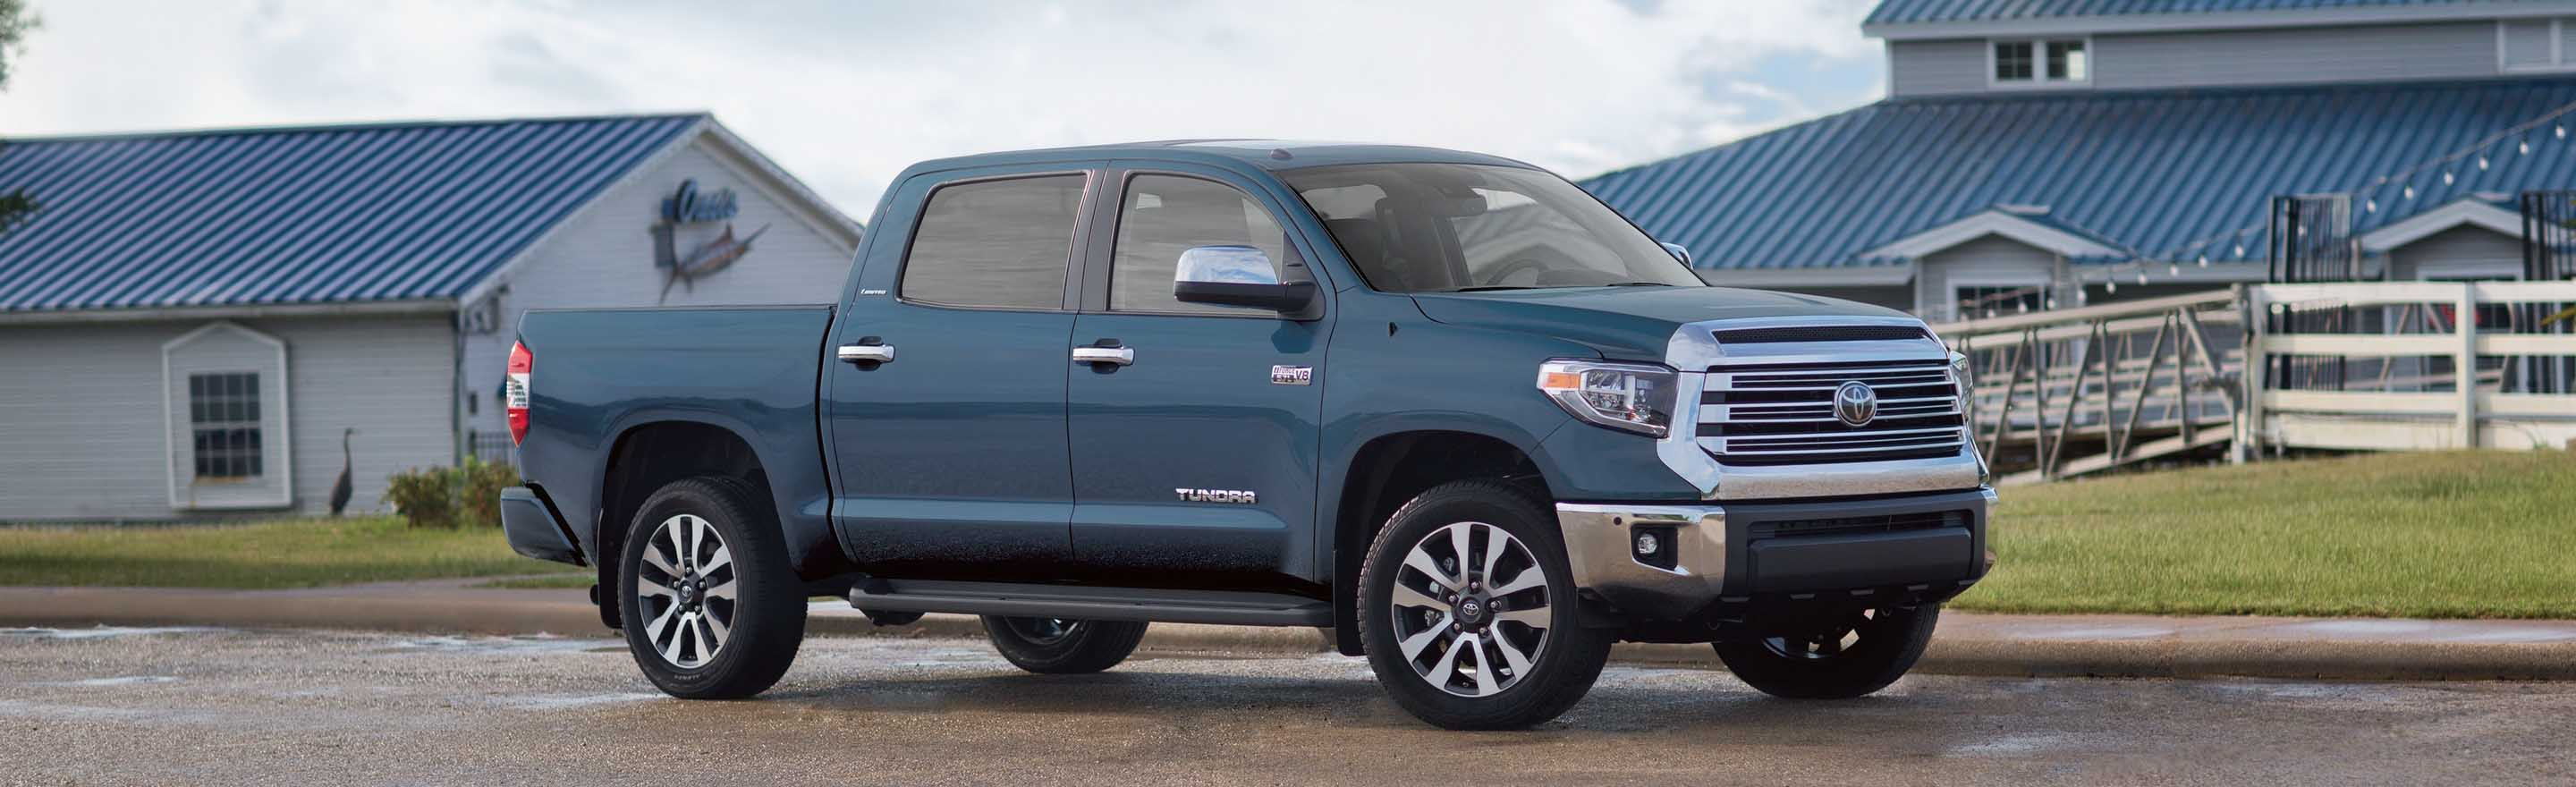 Rugged 2019 Toyota Tundra Trucks in Denison near Sherman, TX